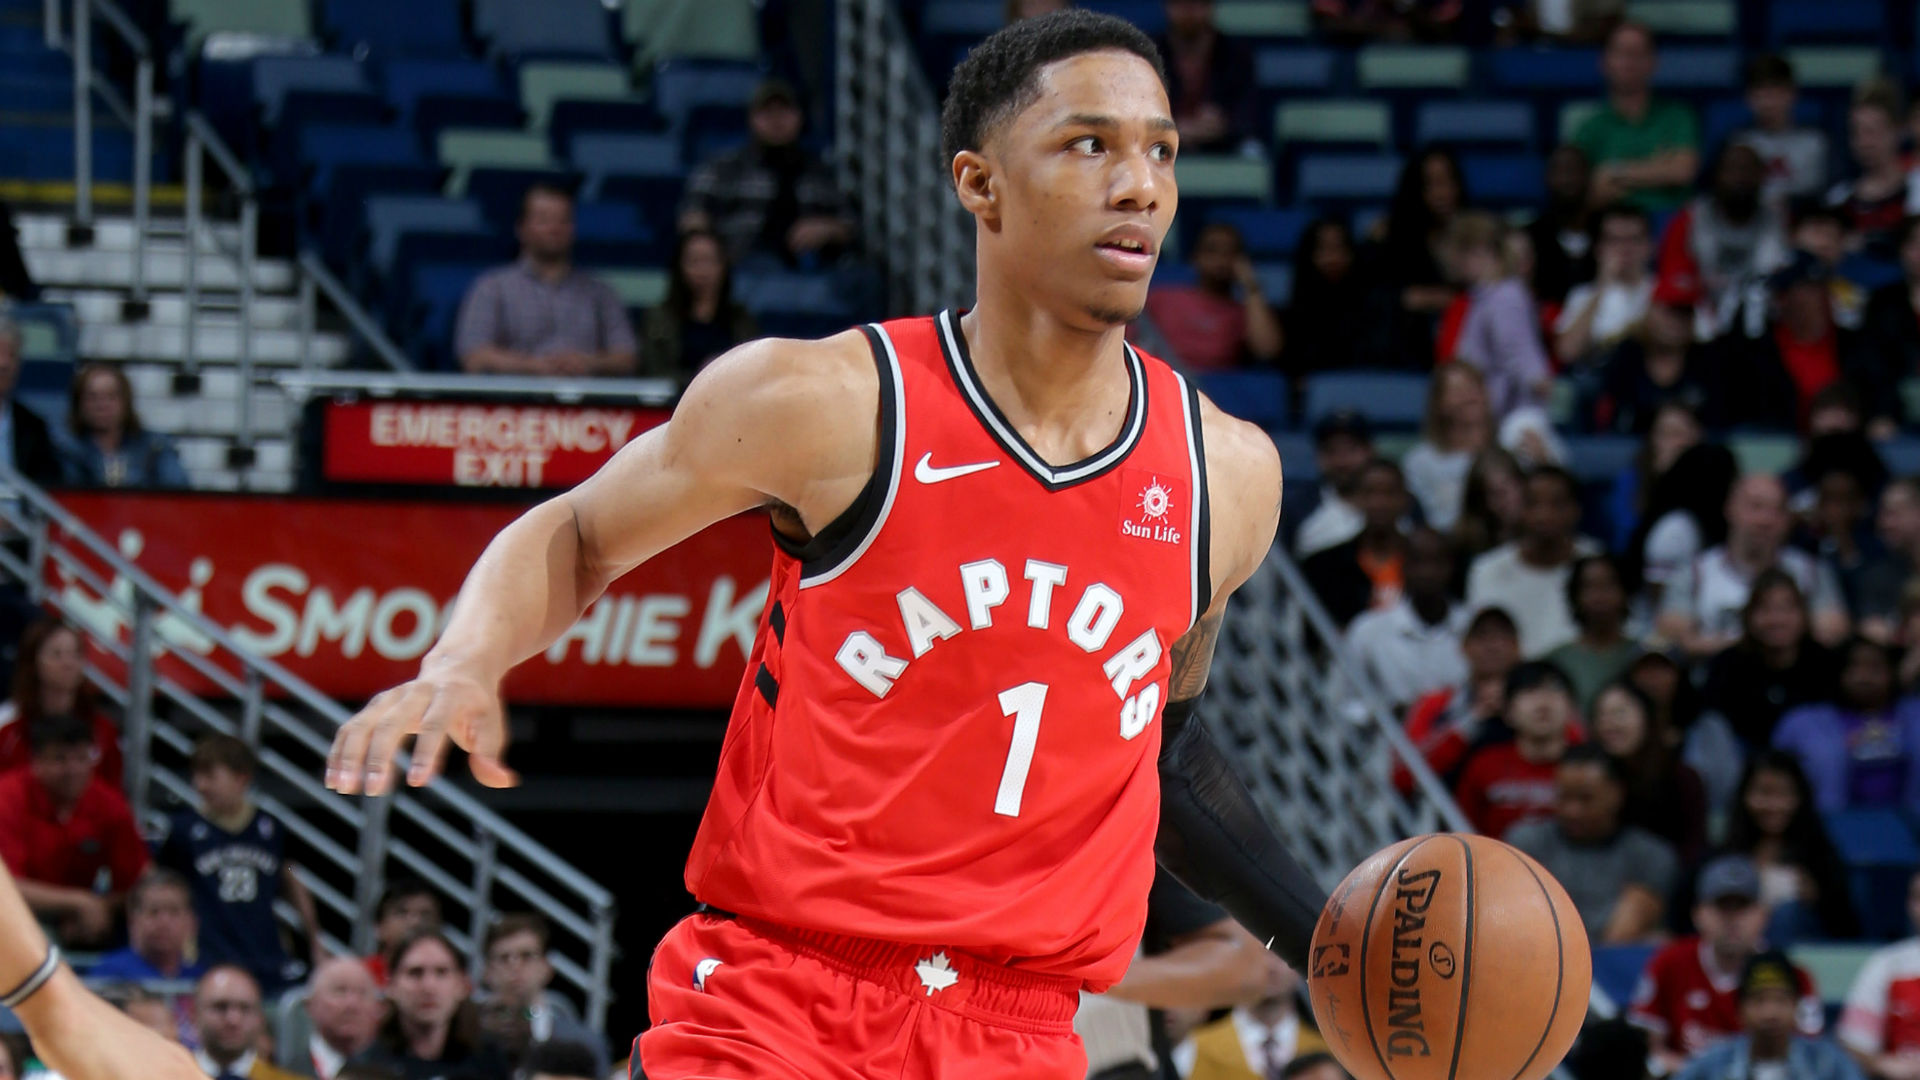 Toronto Raptors Forward Patrick Mccaw To Miss At Least Three Weeks With Sprained Right Thumb Nba Com Canada The Official Site Of The Nba